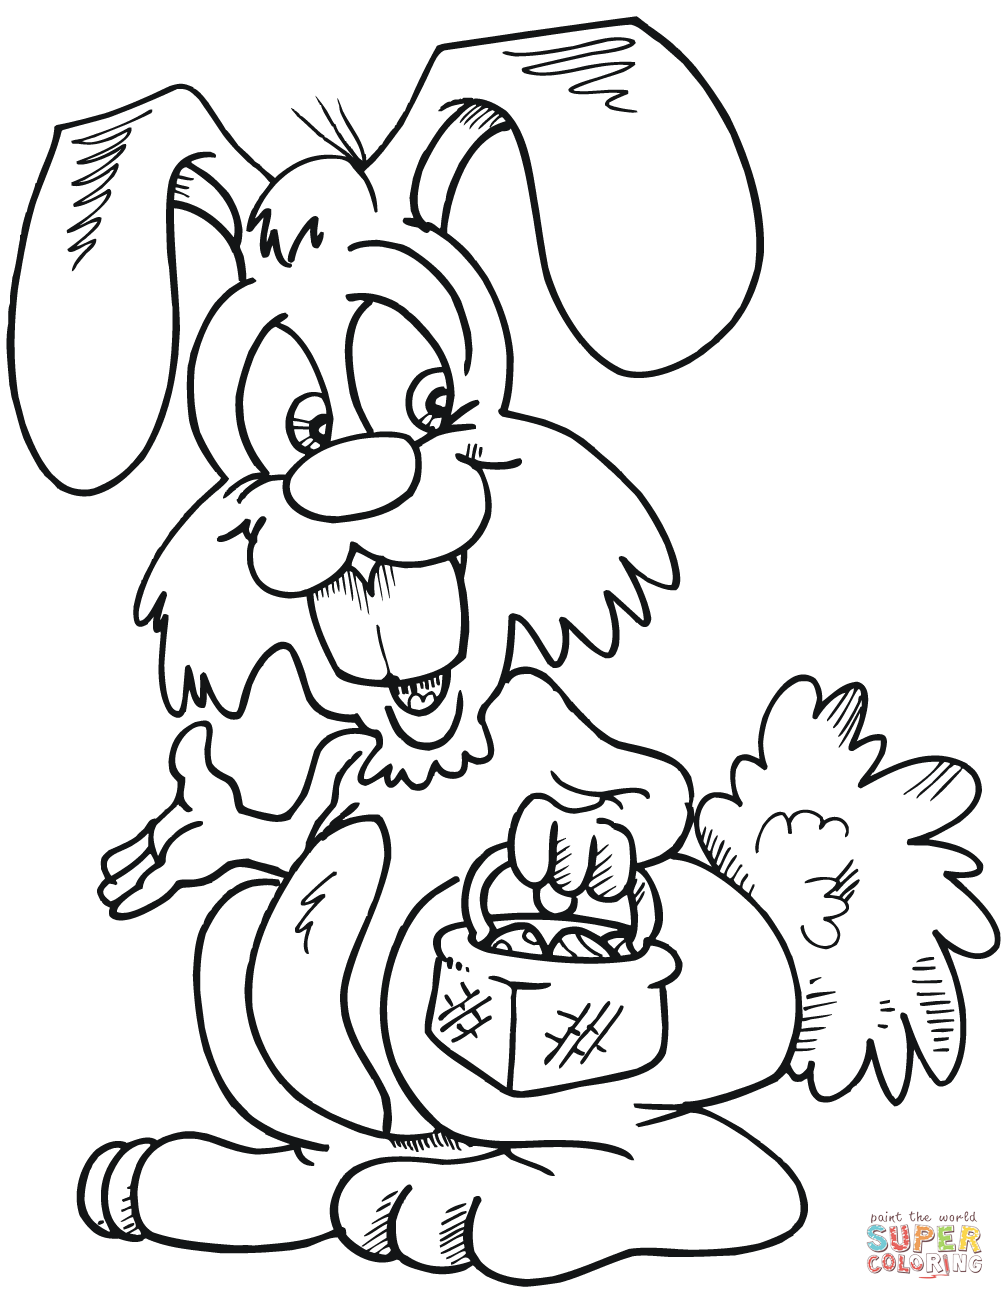 Easter Bunny With Basket Coloring Page Free Printable Coloring Pages